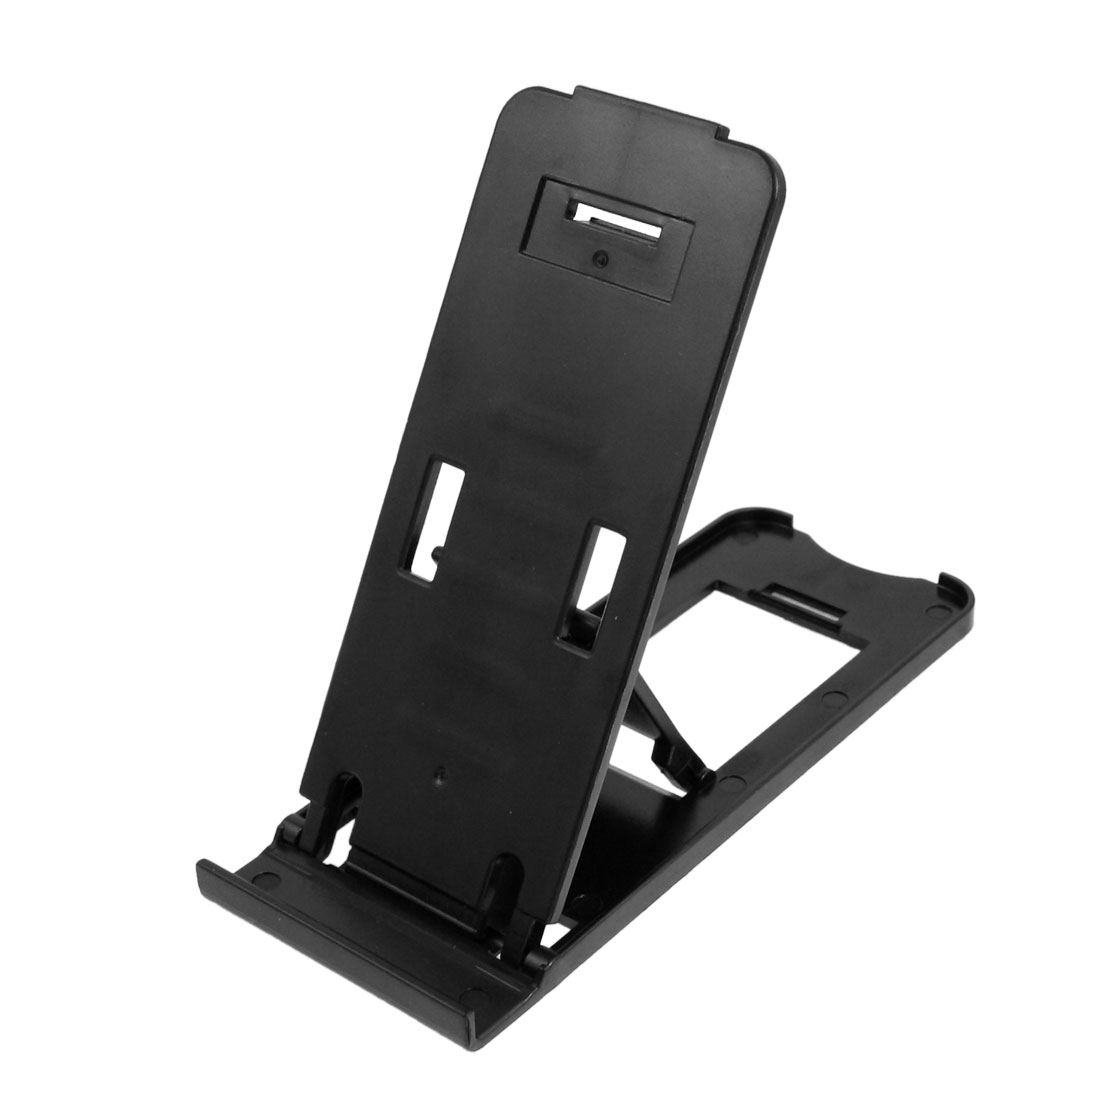 Unique Bargains Black Plastic Foldable Stand Holder for iPhone iPad